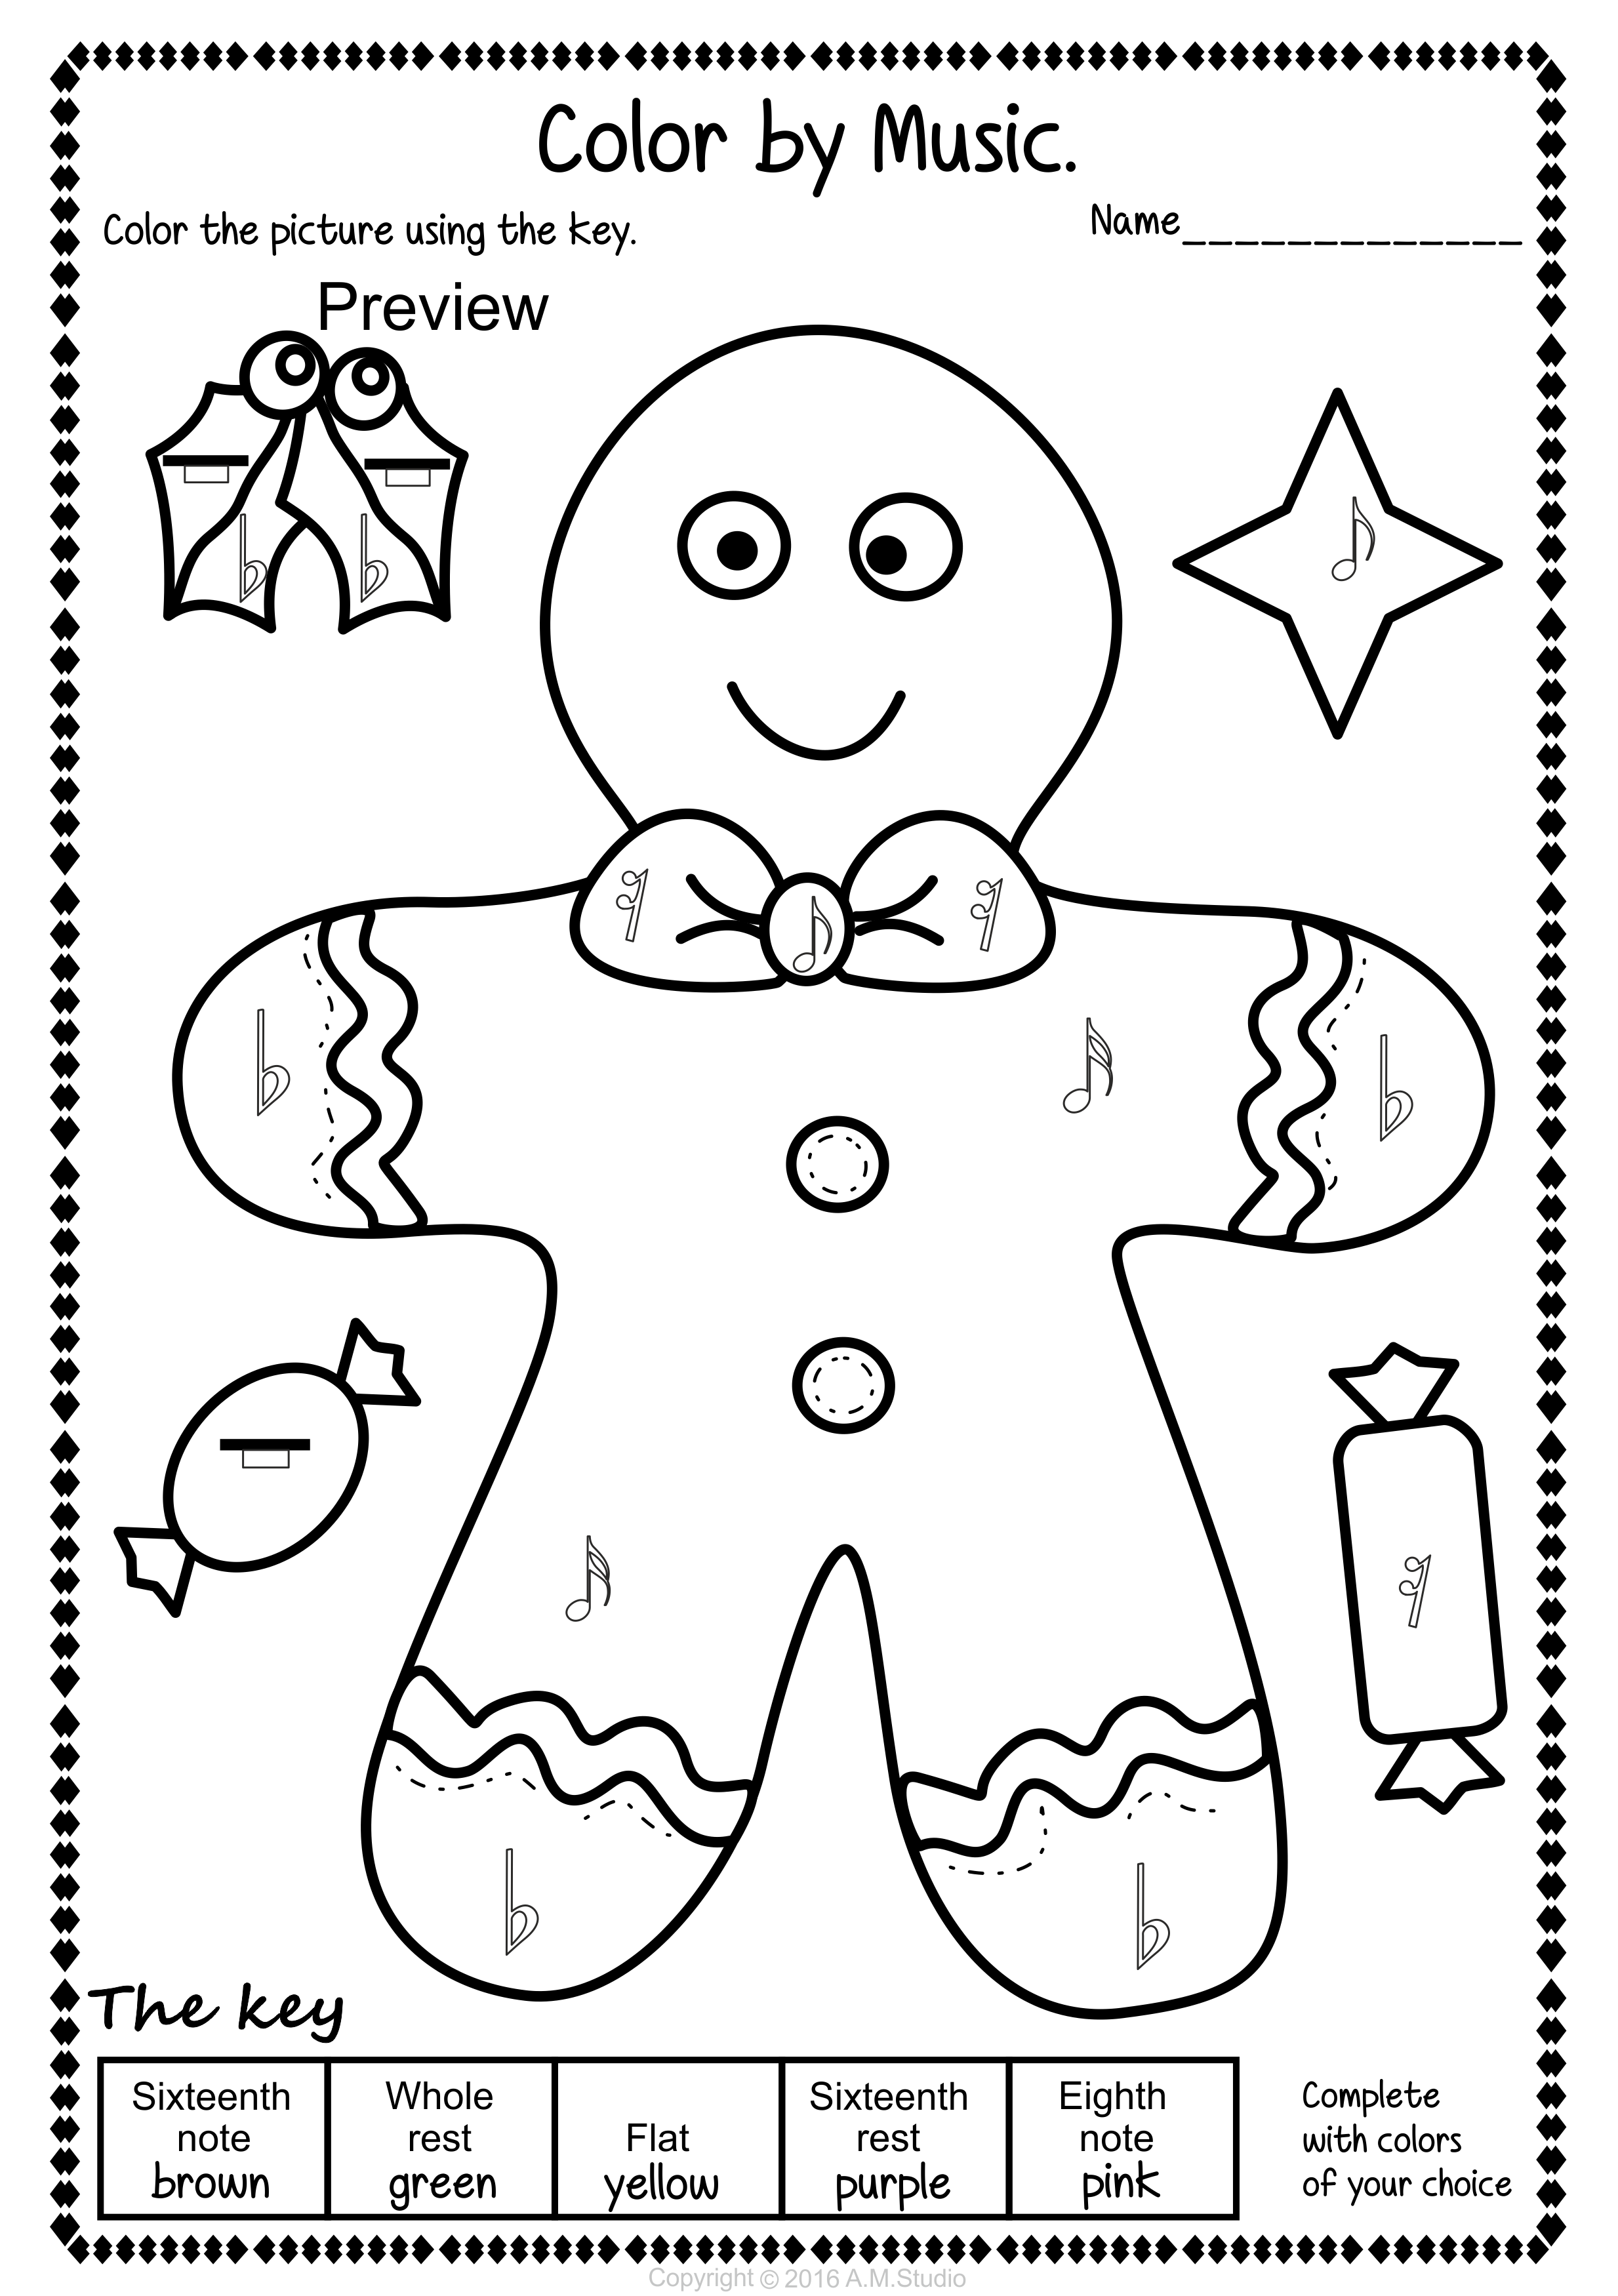 simple and fun christmas music coloring activity for kids this set contains 14 designs in 3 different formats 42 pages in total